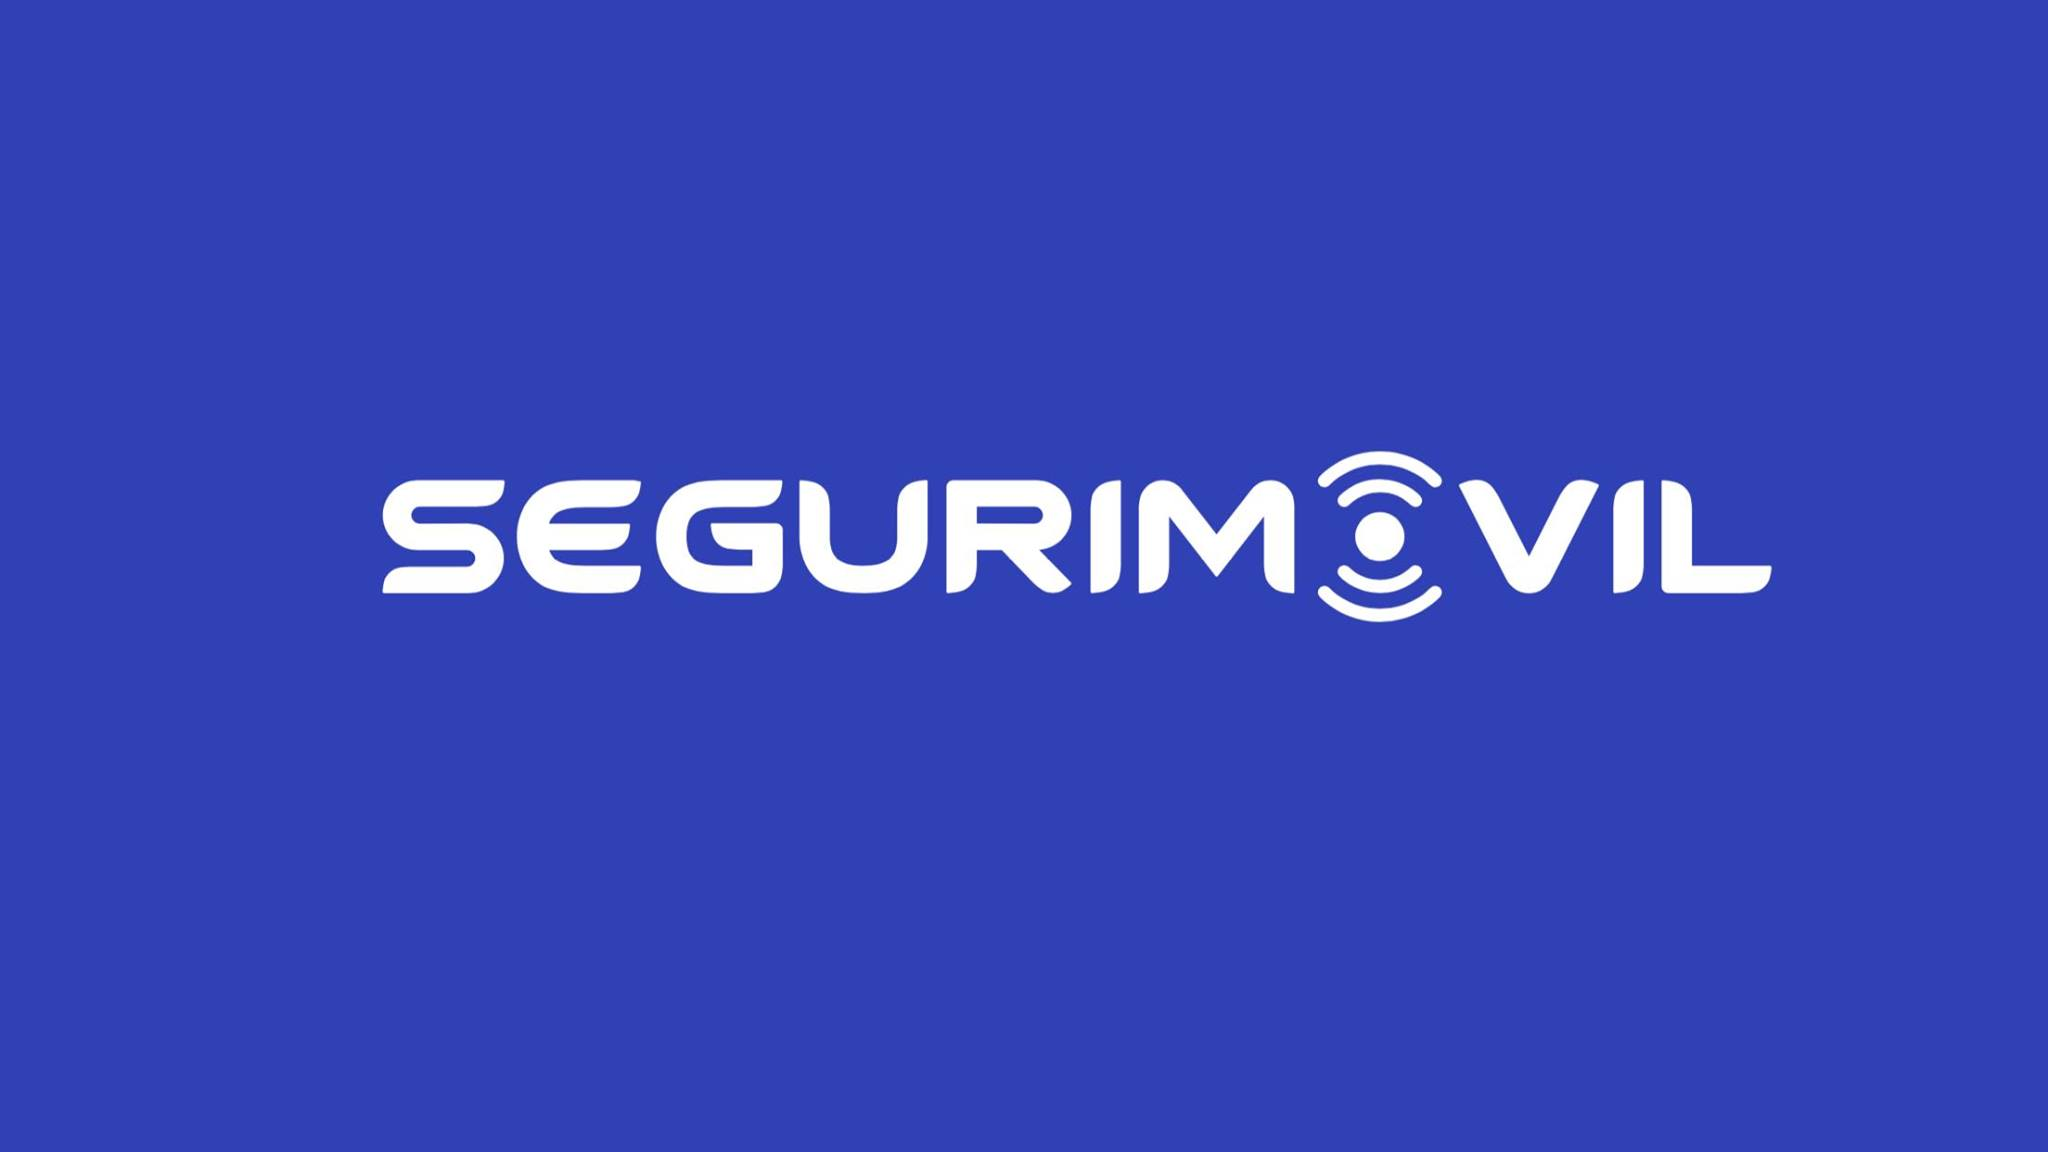 Segurimovil